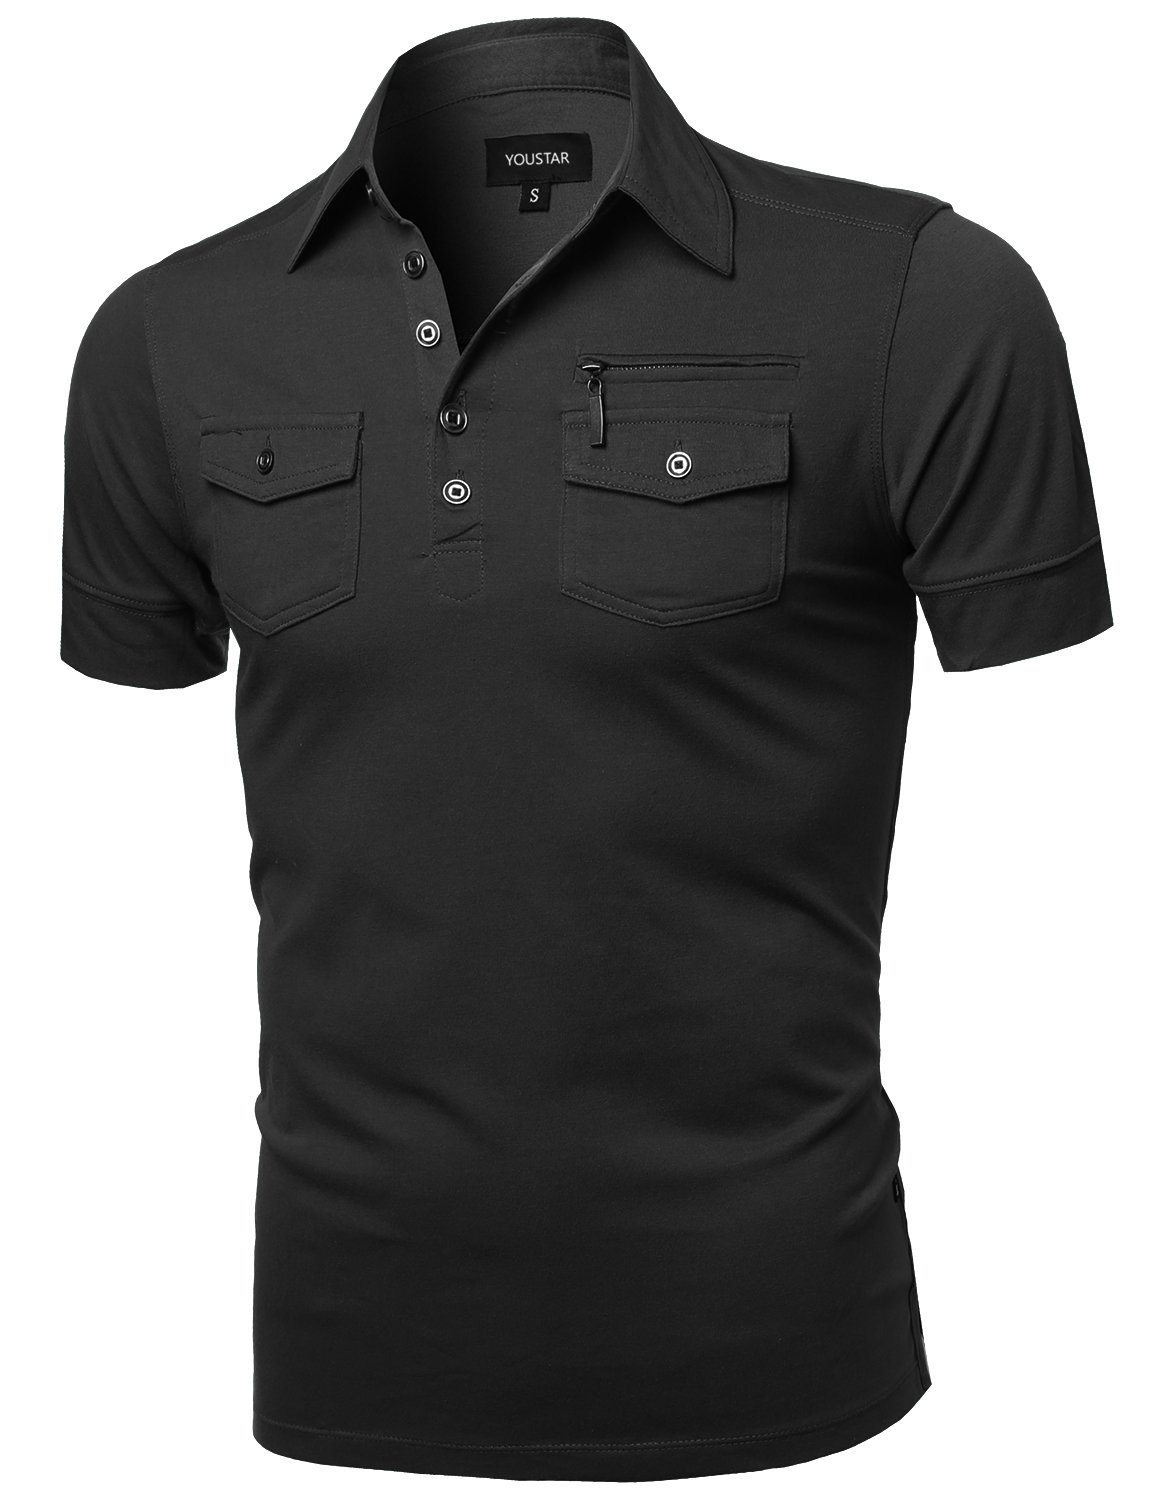 Youstar Men's Solid Short Sleeves Button Placket Pattern Design Polo Shirt